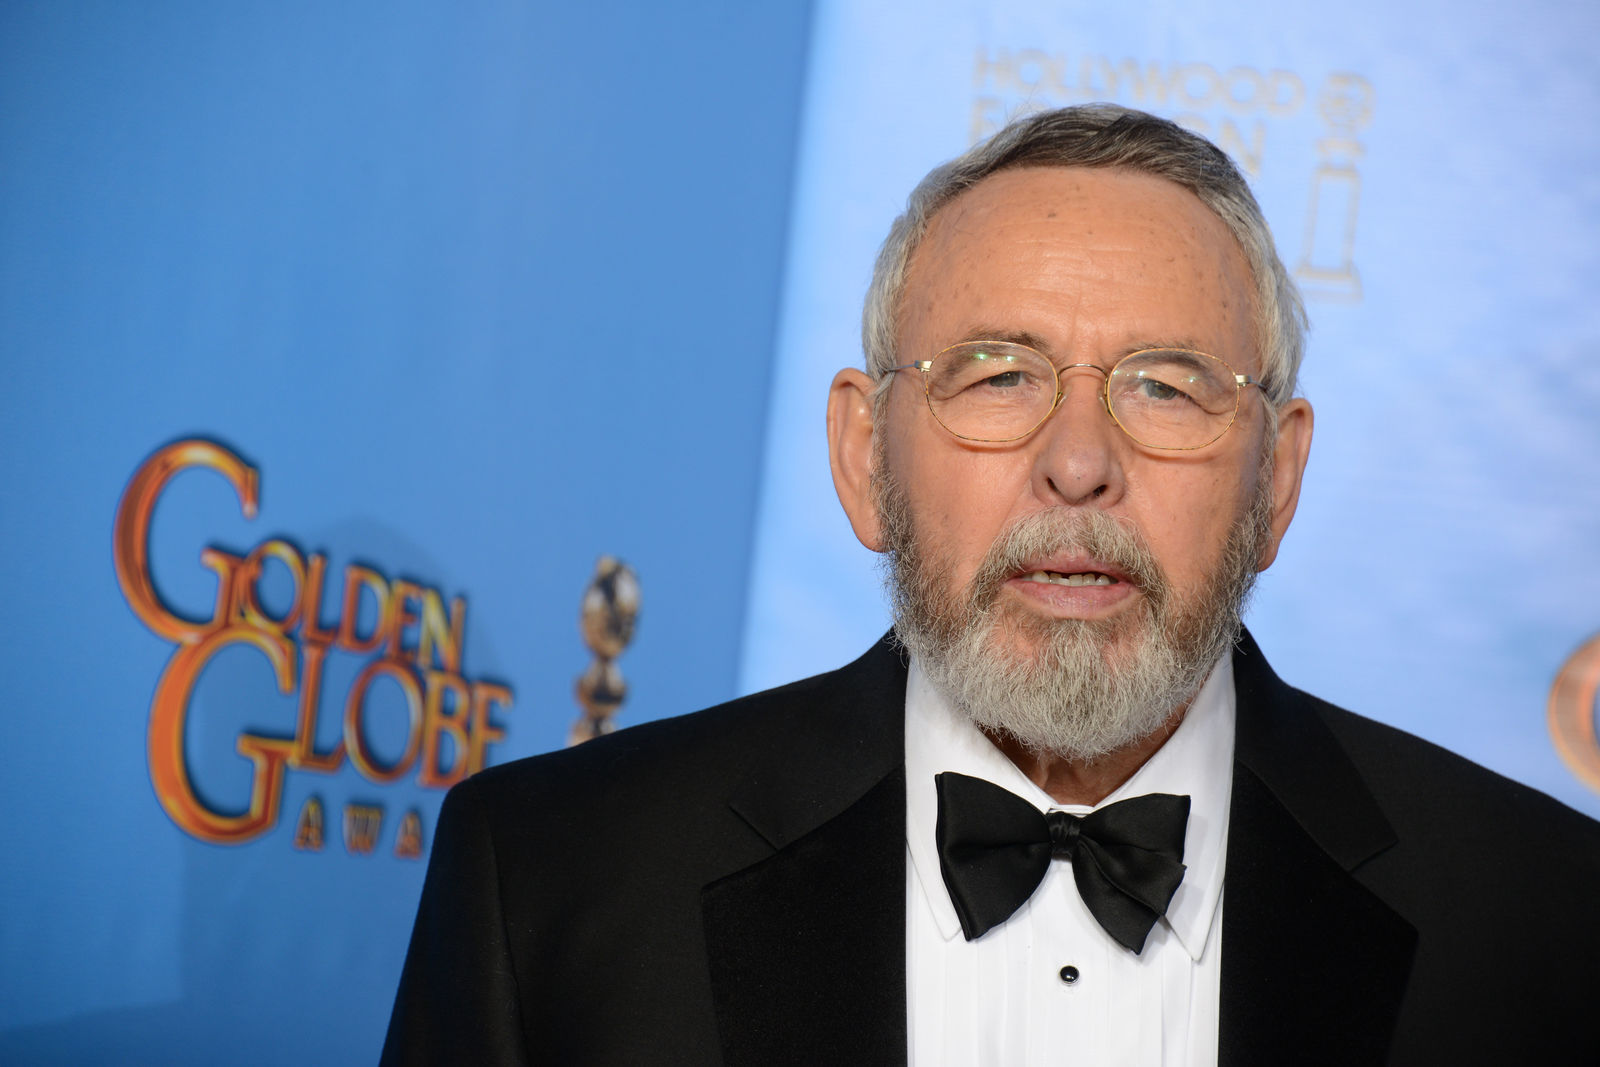 Retired CIA technical operations officer Tony Mendez poses backstage at the 70th Annual Golden Globe Awards at the Beverly Hilton Hotel on Sunday Jan. 13, 2013, in Beverly Hills, Calif. (Photo by Jordan Strauss/Invision/AP)